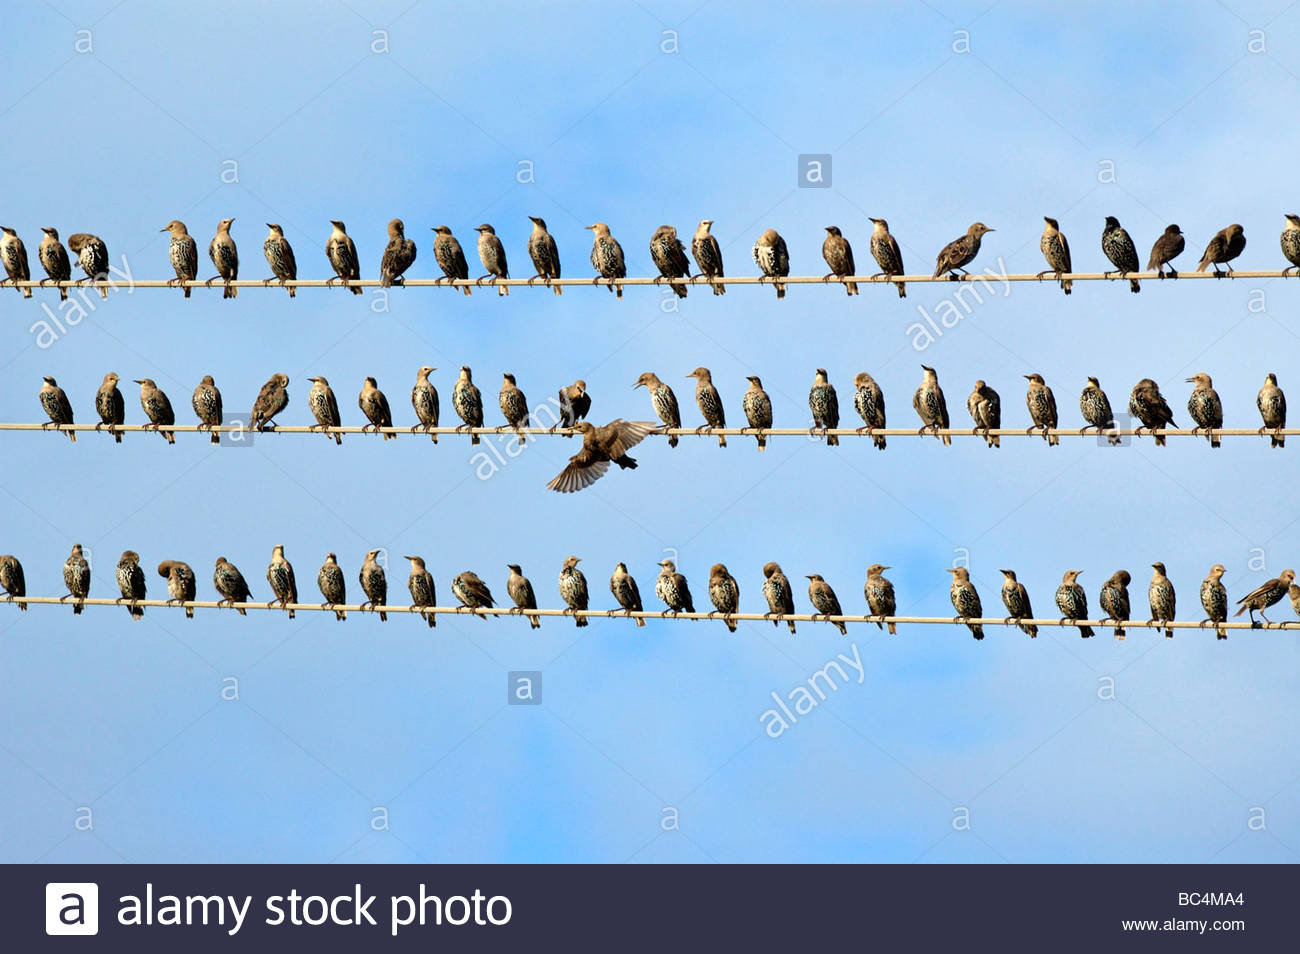 Migration Birds Power Lines Stock Photos & Migration Birds Power ...